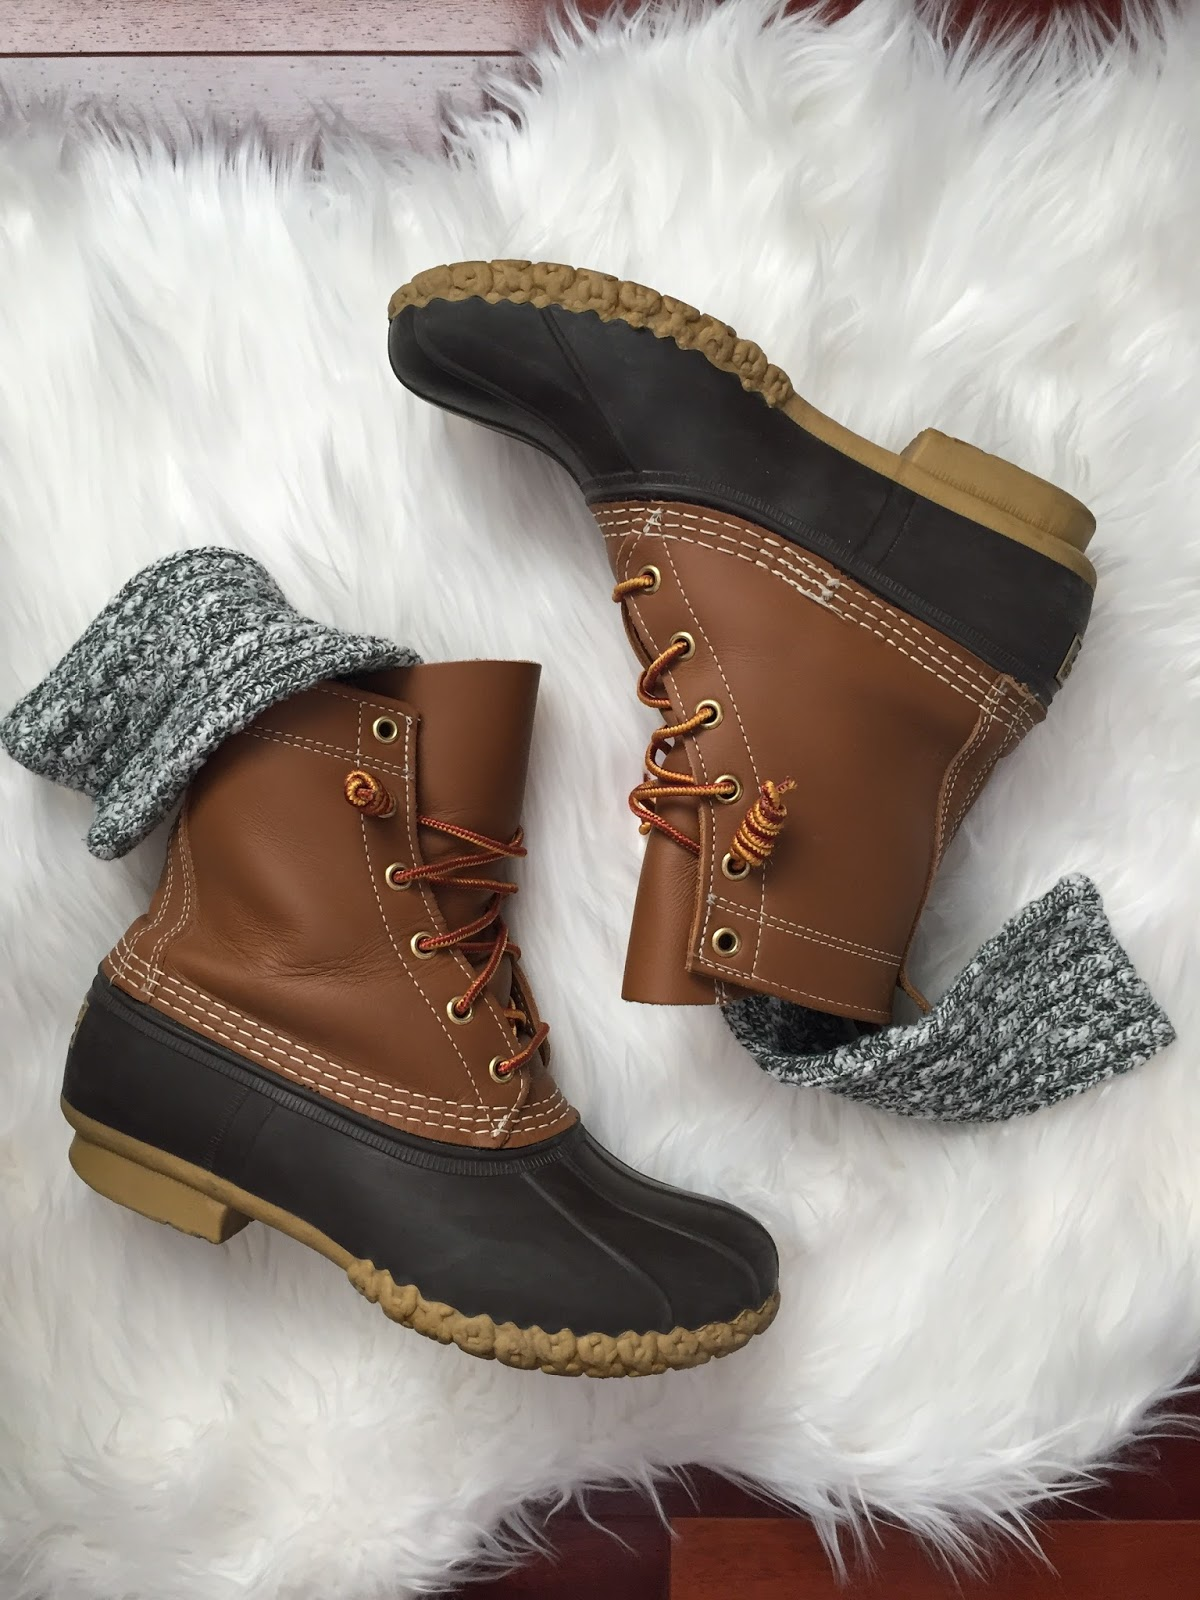 I Also Live In These Boots All Winter Long And Ll Be Sharing The Things You Need To Know About Ing Your First Pair Of Bean